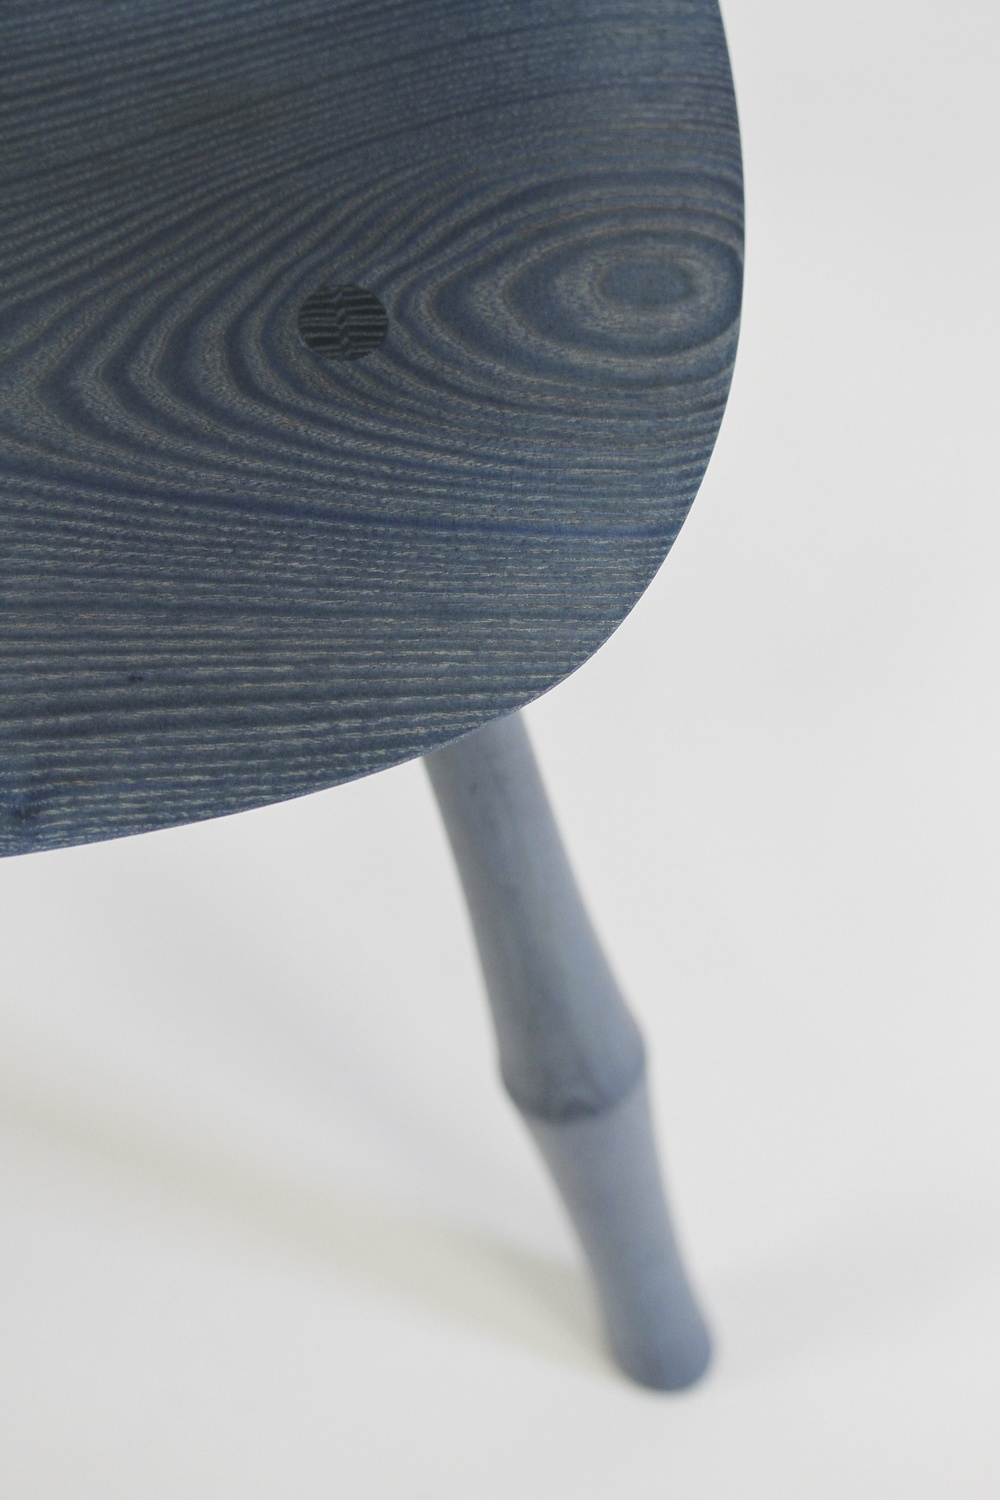 Wayland Sidechair:  Sky Blue Stain on Ash